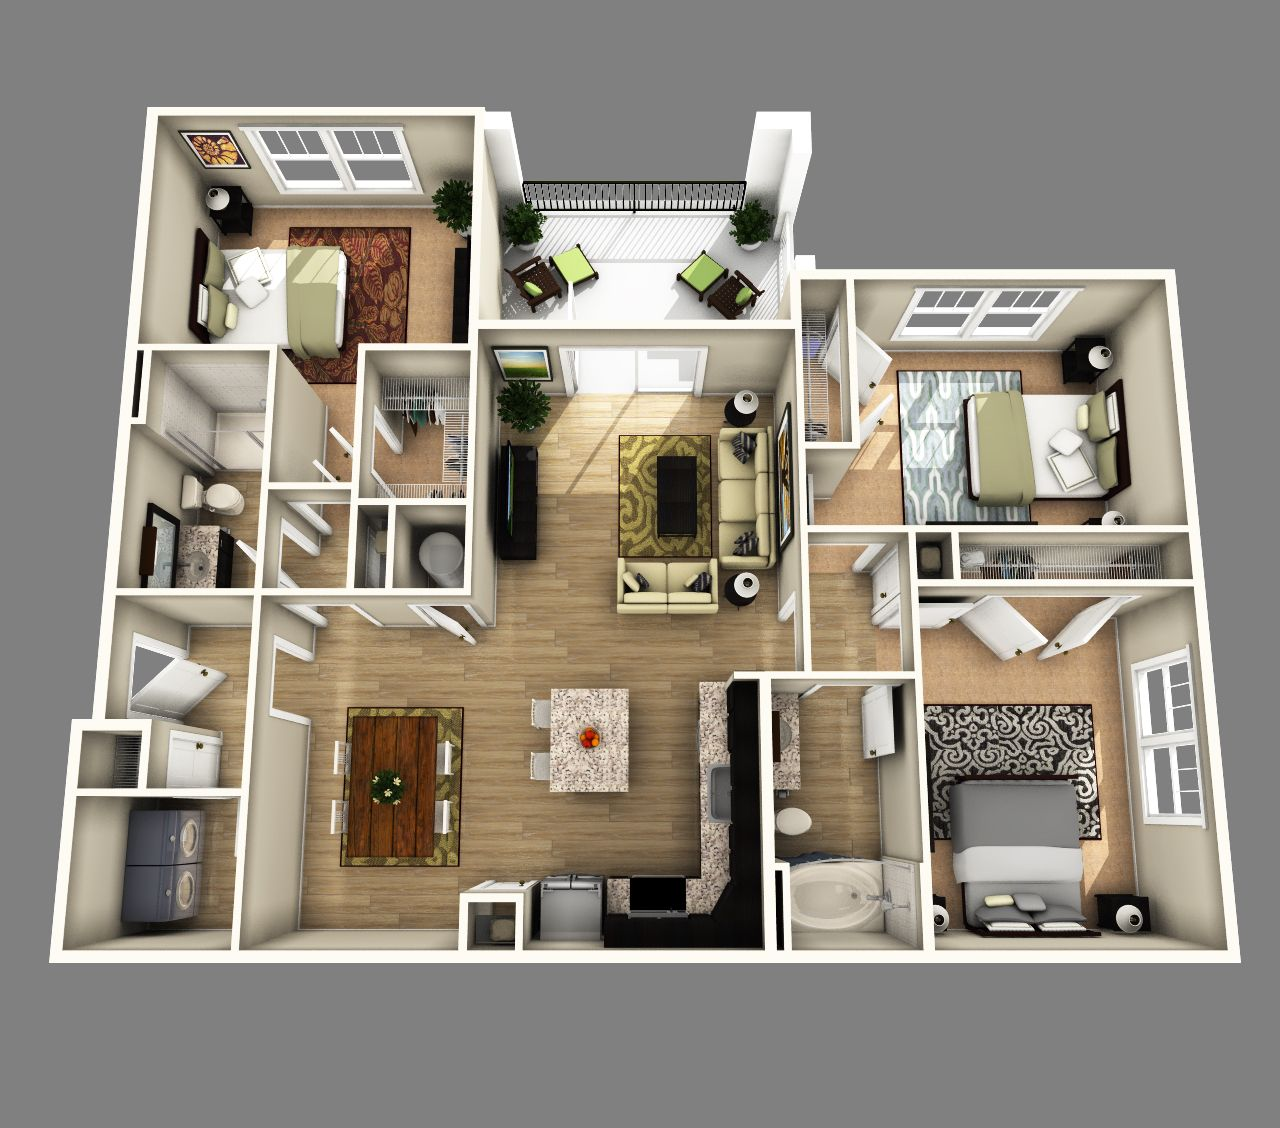 3d open floor plan 3 bedroom 2 bathroom google search for 3 bedroom and 2 bath house plans